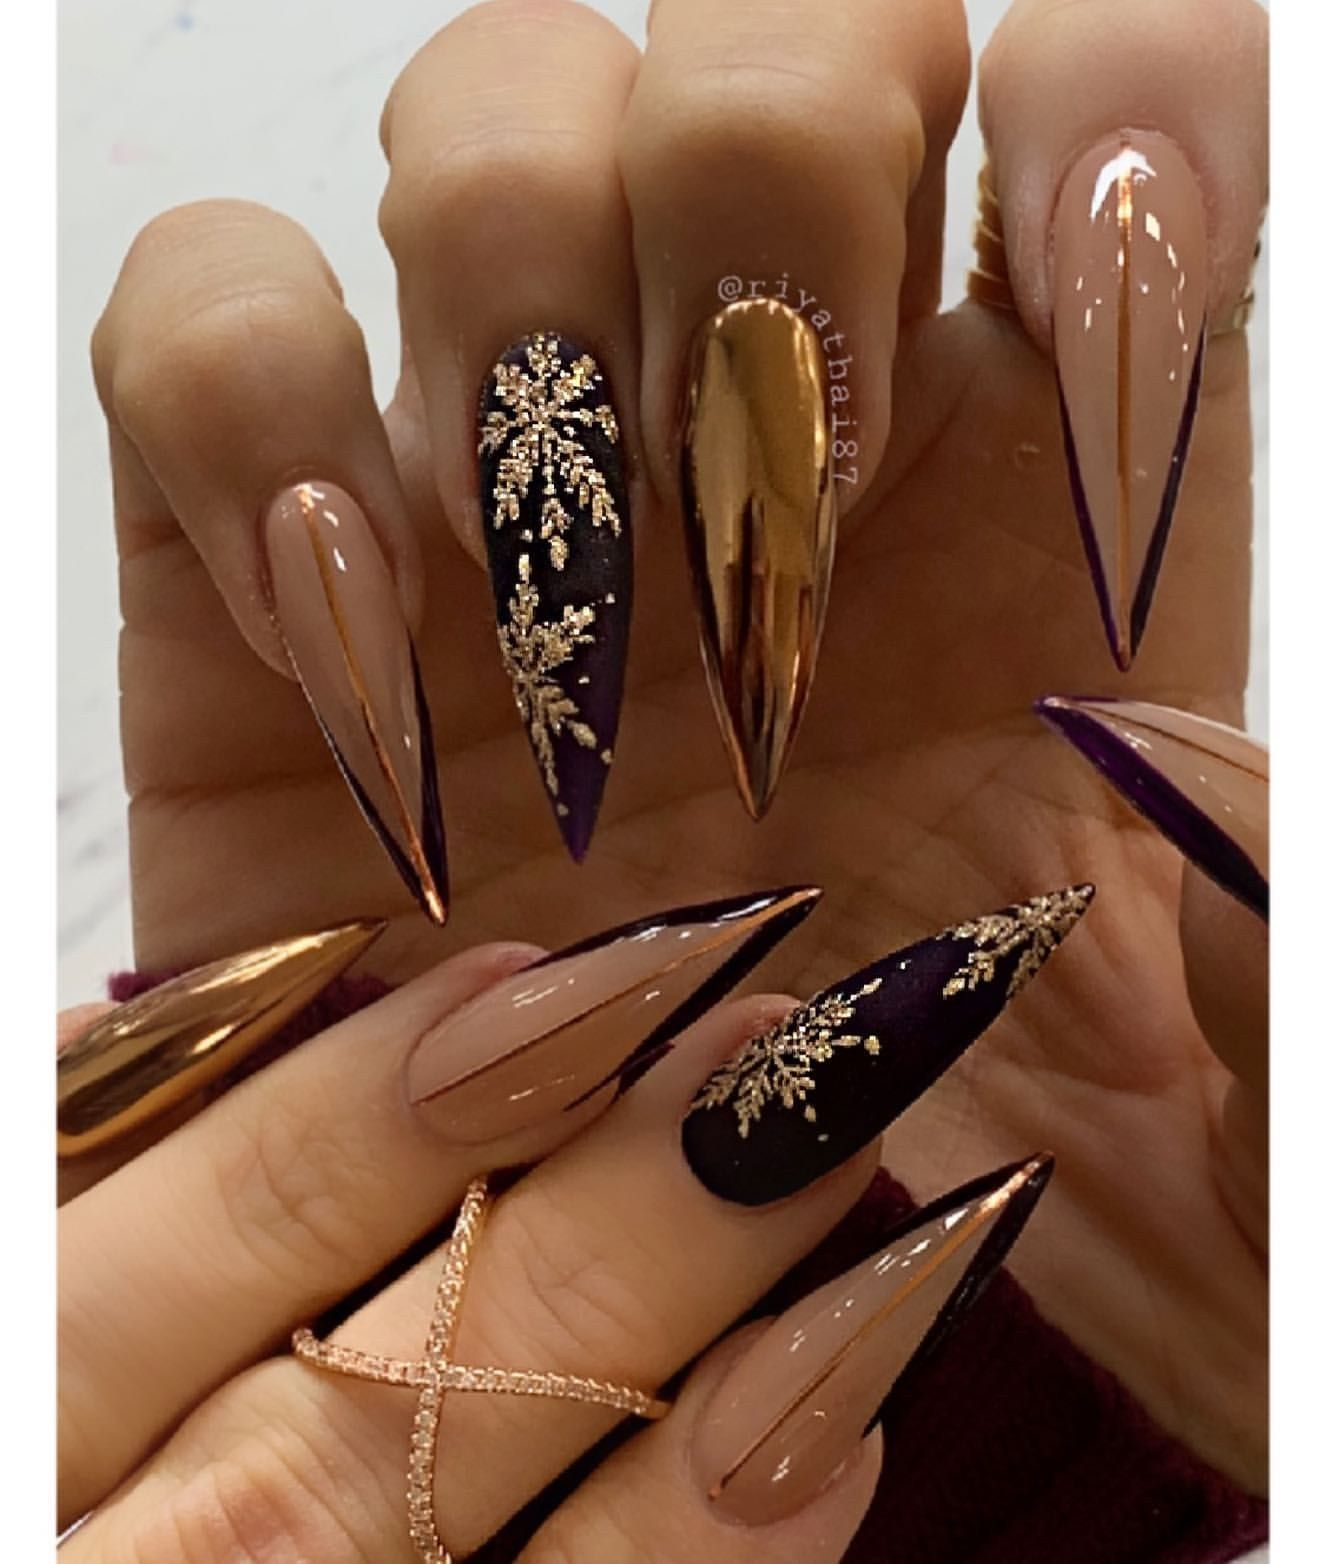 Winter Fashion Trends Will Change A Bit The Same Goes For Nail Art If You Want To Know The Trend Of Winter Nails In 2020 Swag Nails Gorgeous Nails Stiletto Nail Art